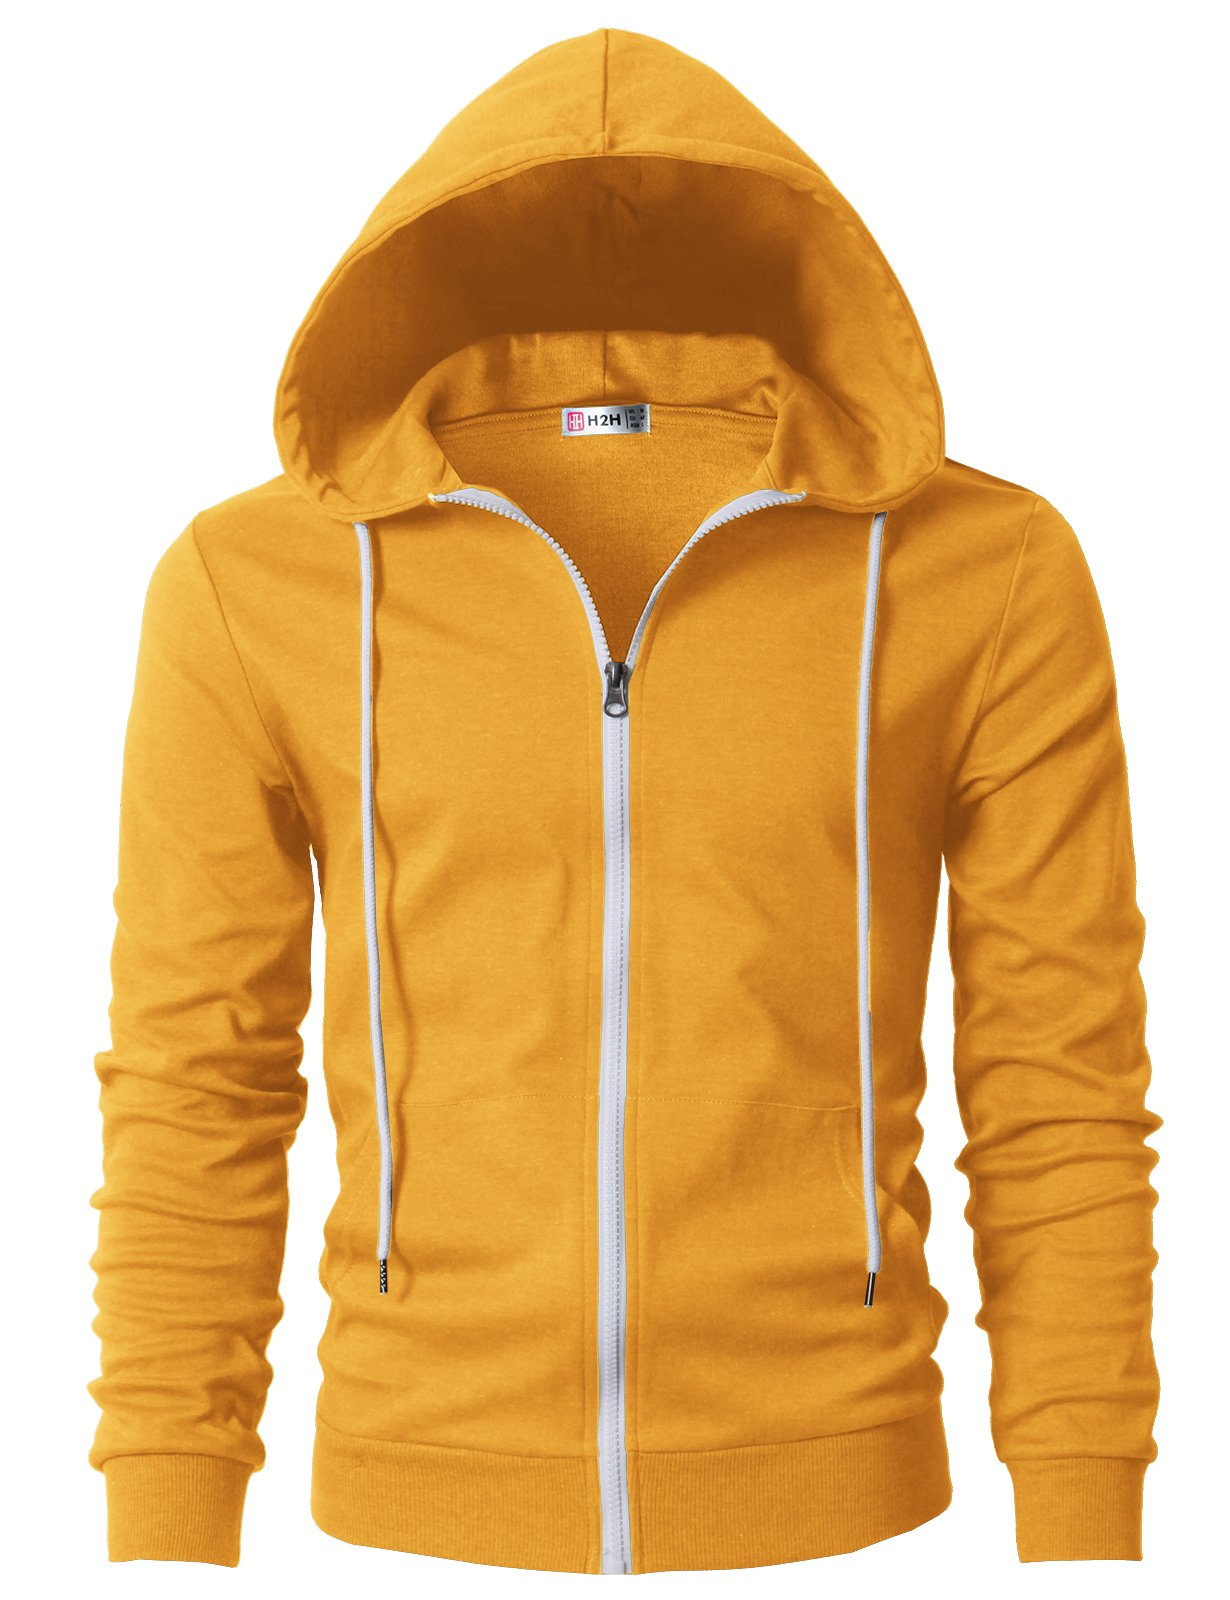 H2H Mens Active Comfy Slim Fit Full Zip up Long Sleeve Hoodie Cotton Jacket Mustard US S/Asia M (CMOHOL042)